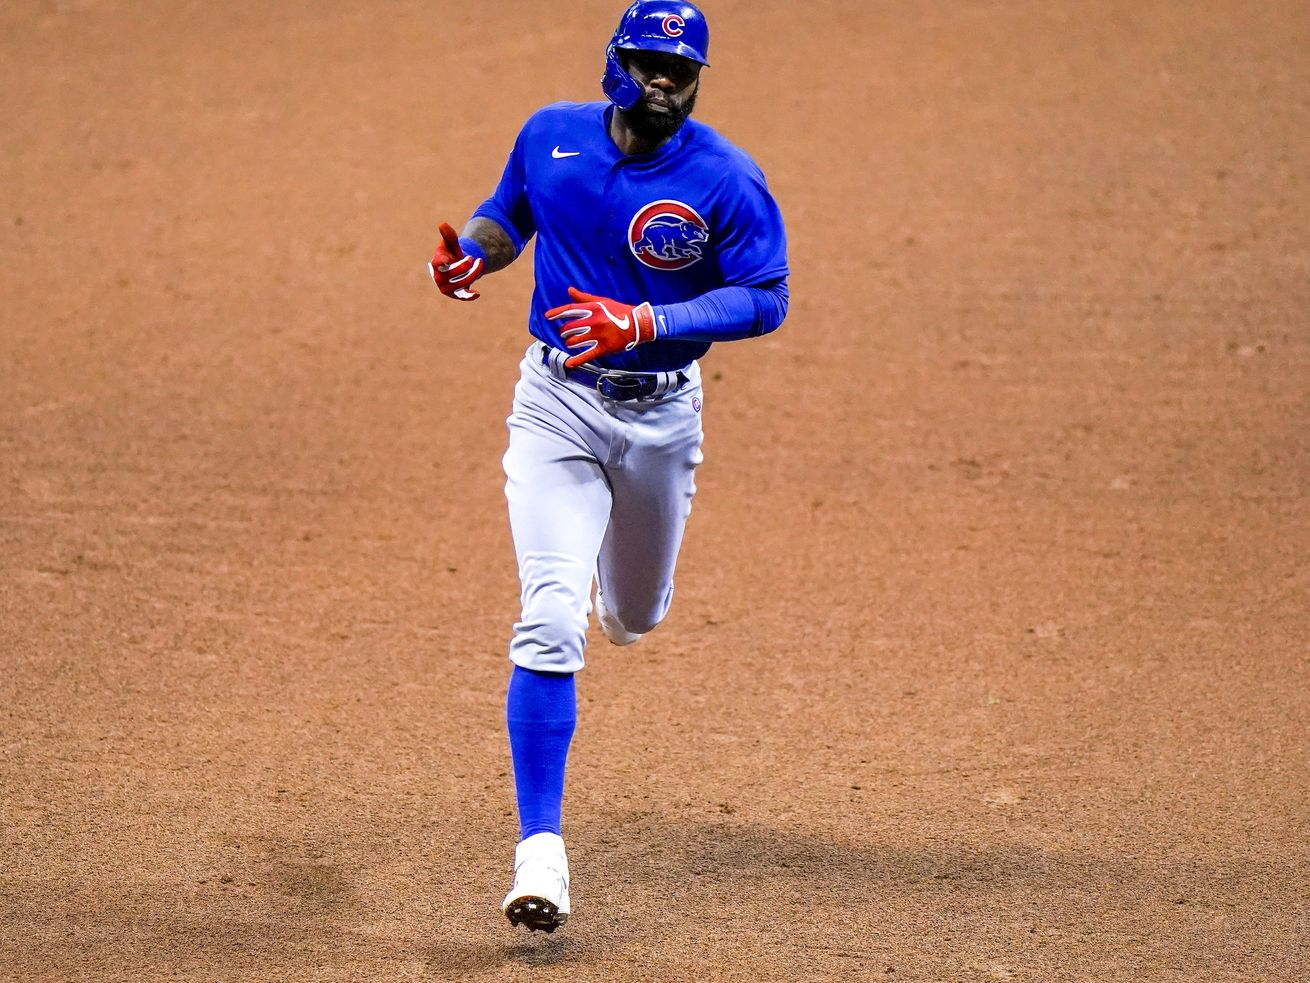 Jason Heyward's three-run blast caps Cubs' ninth-inning comeback over the Brewers